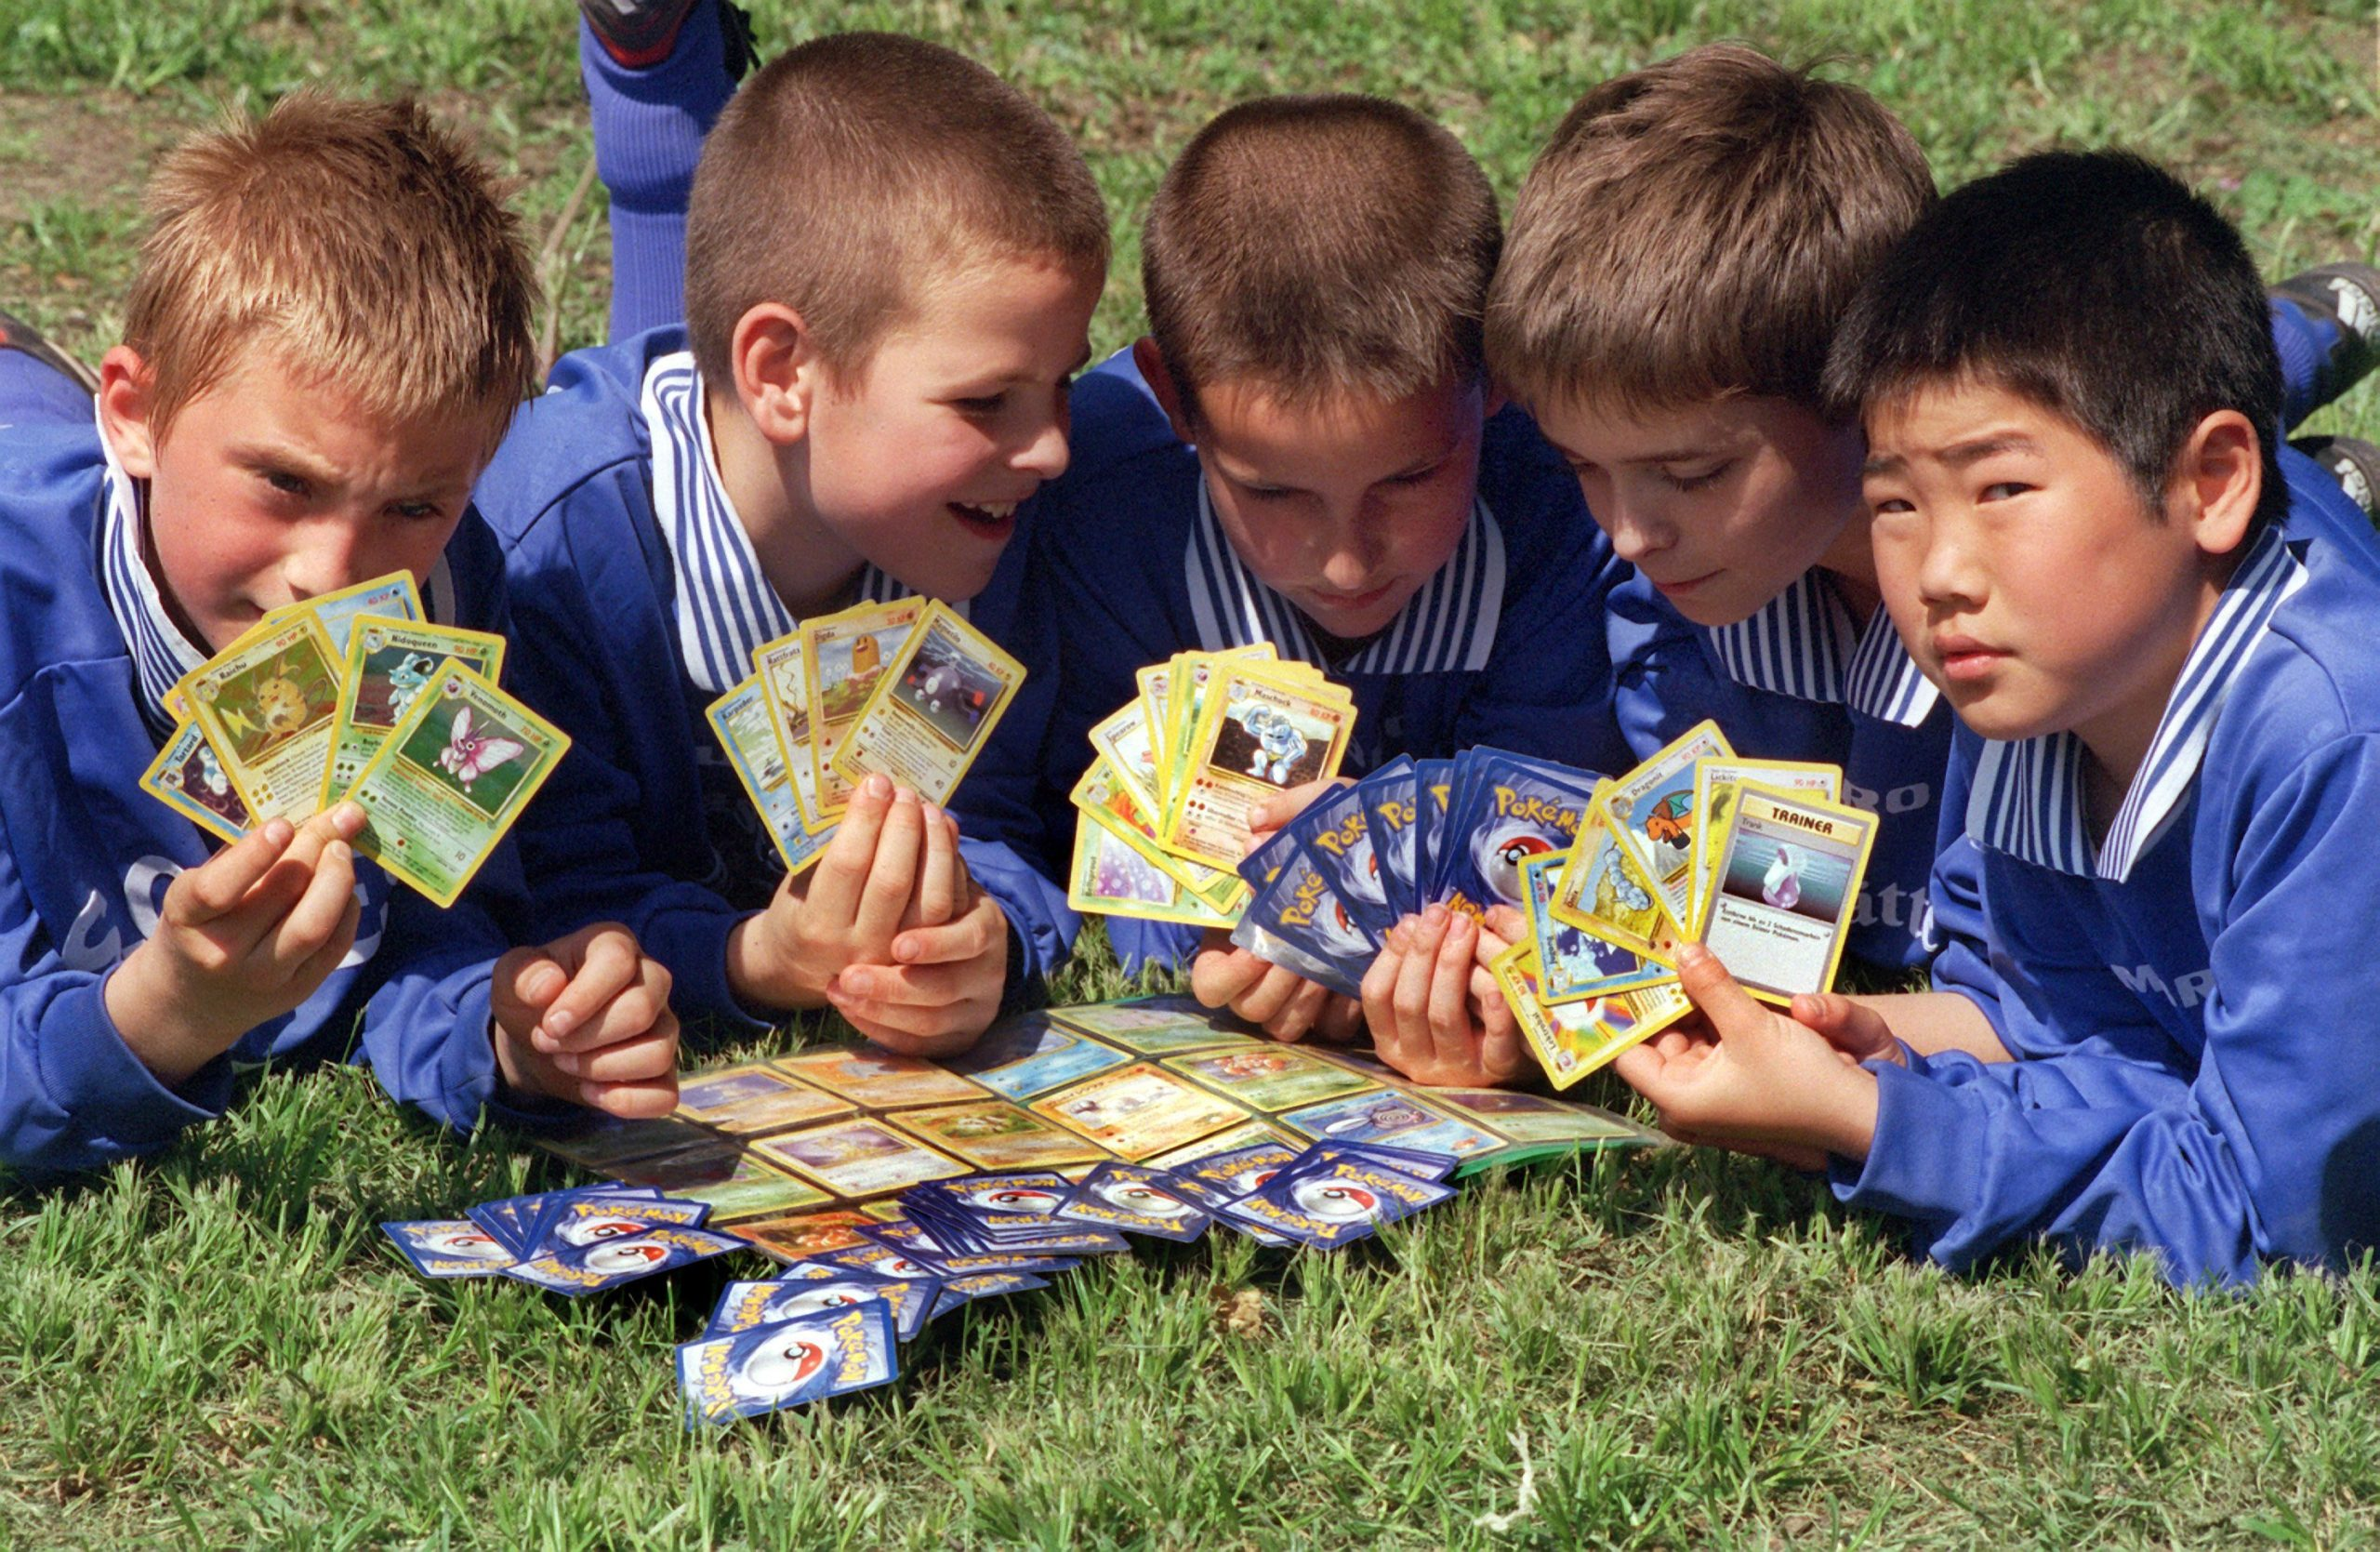 Most Popular Toys of the 90s: Pokemon Cards